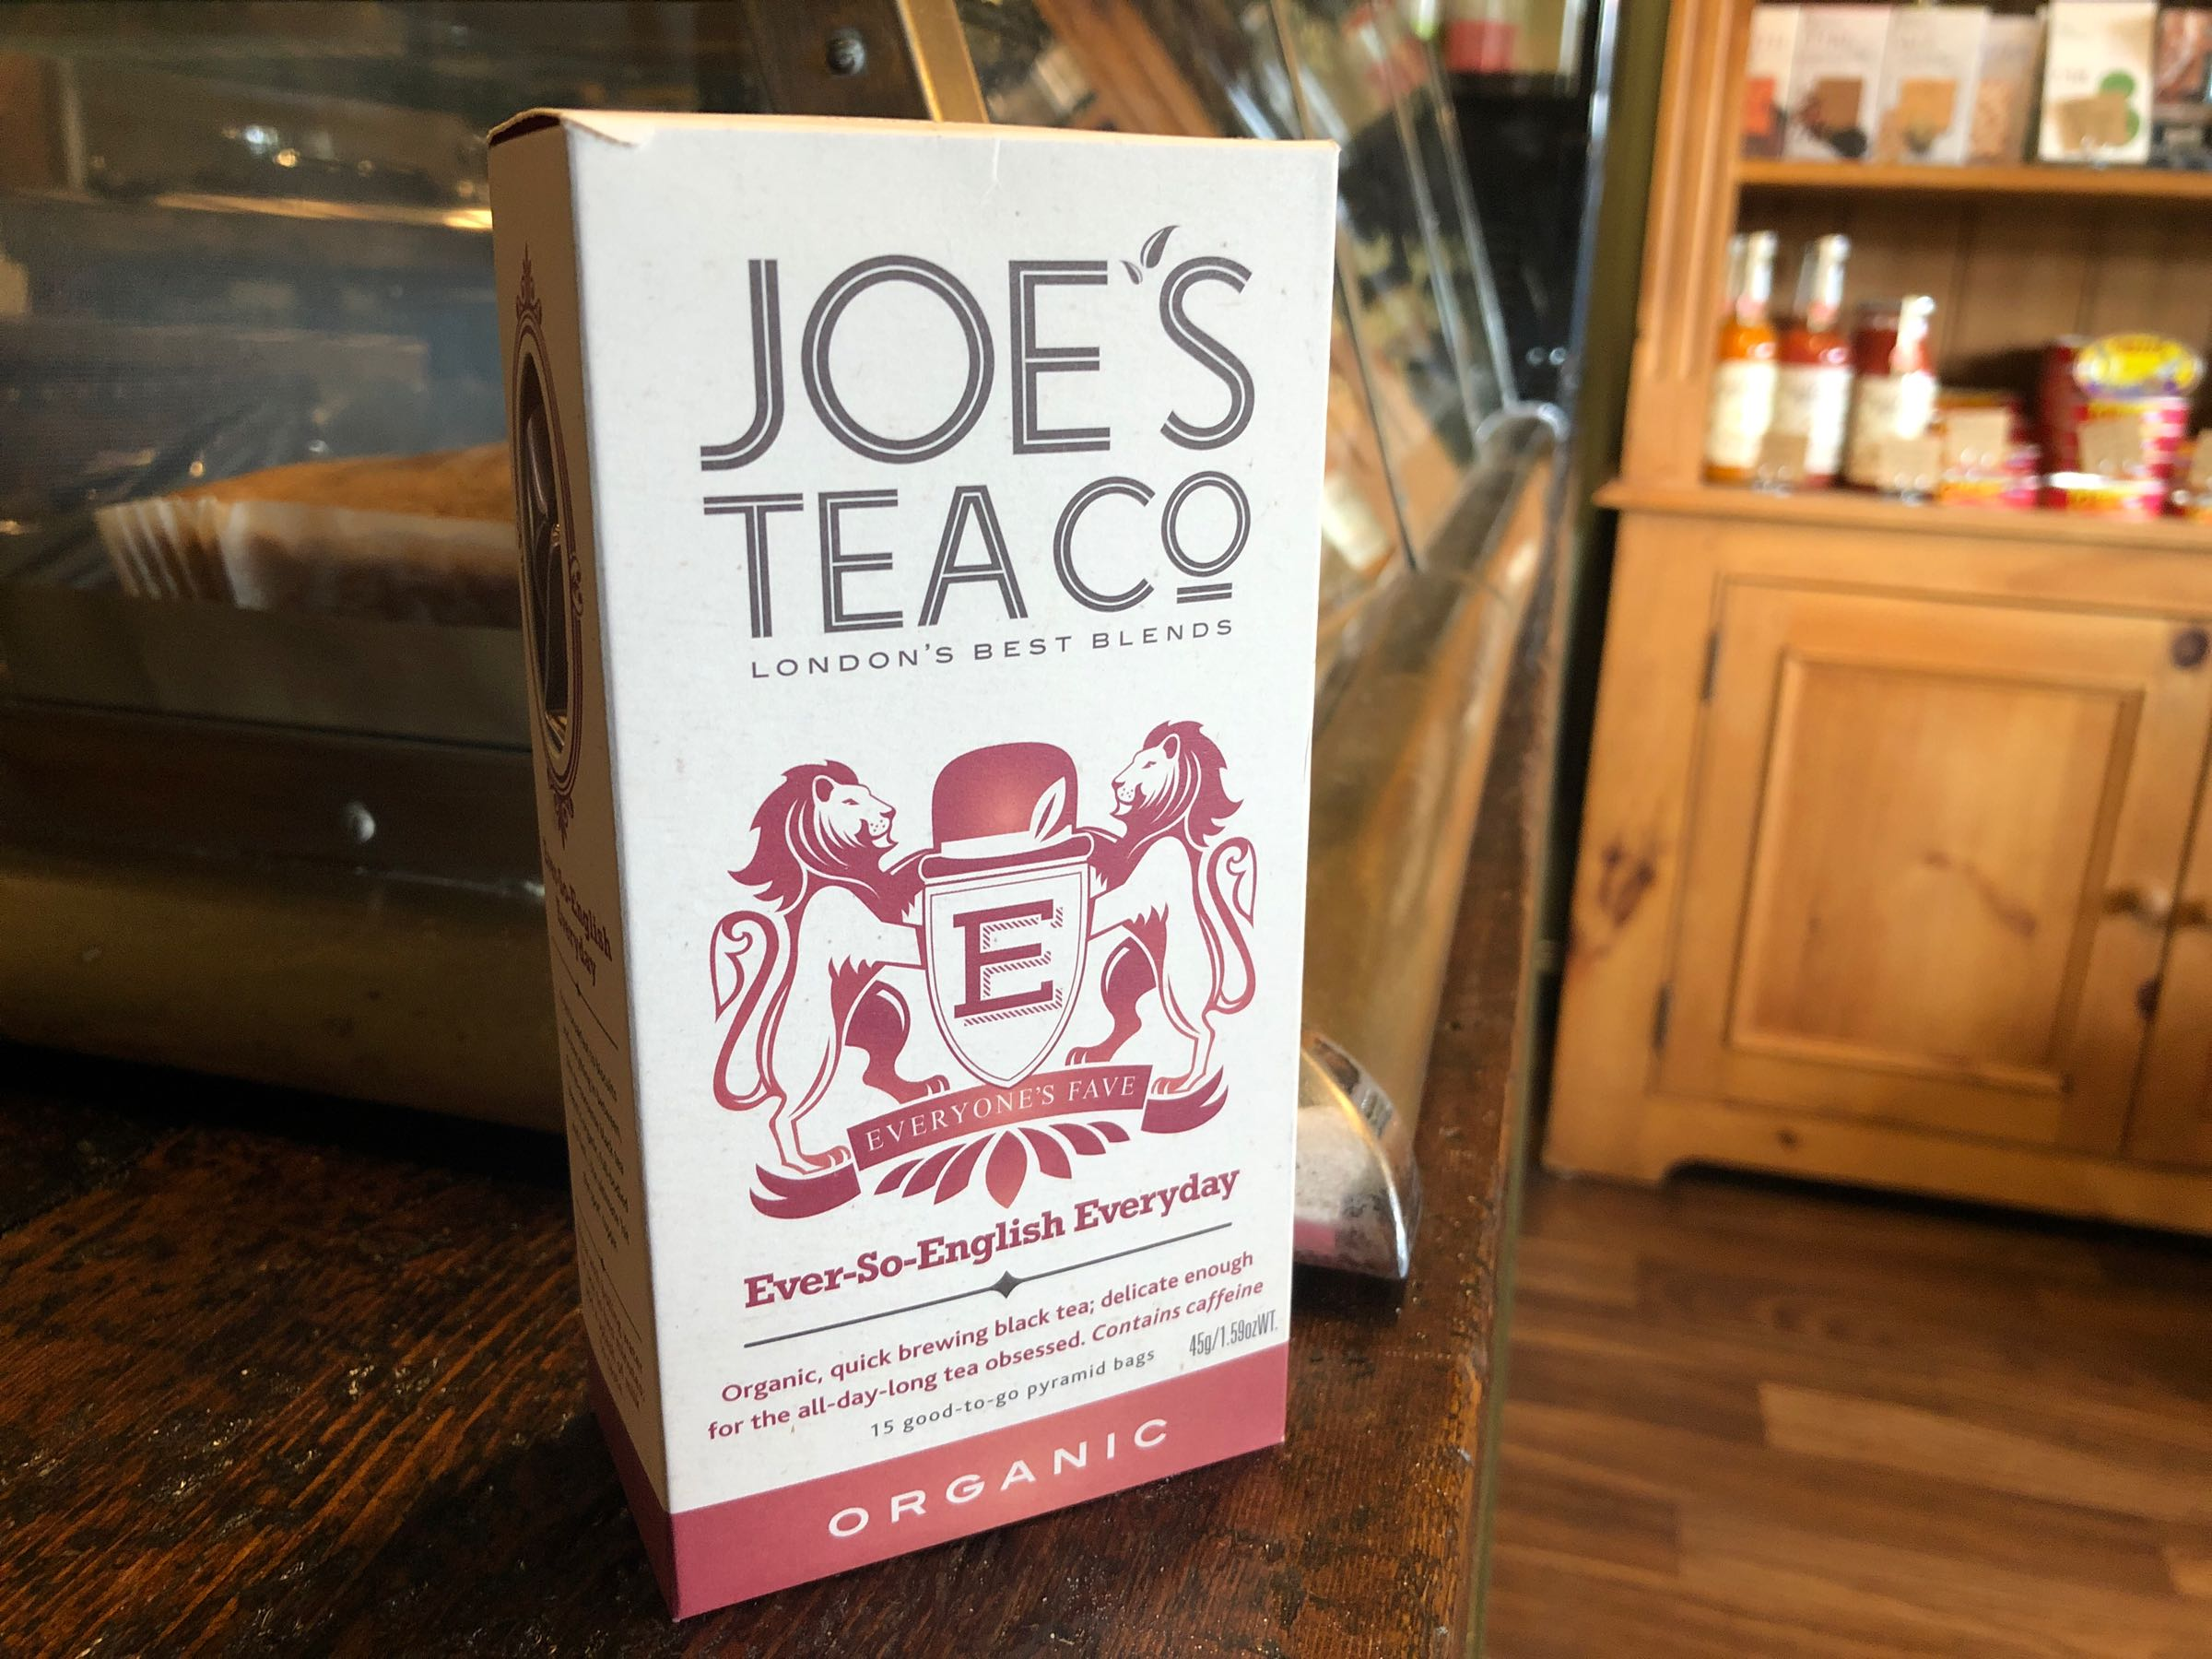 Joe's Tea Co. Ever-So-English Everyday - Organic